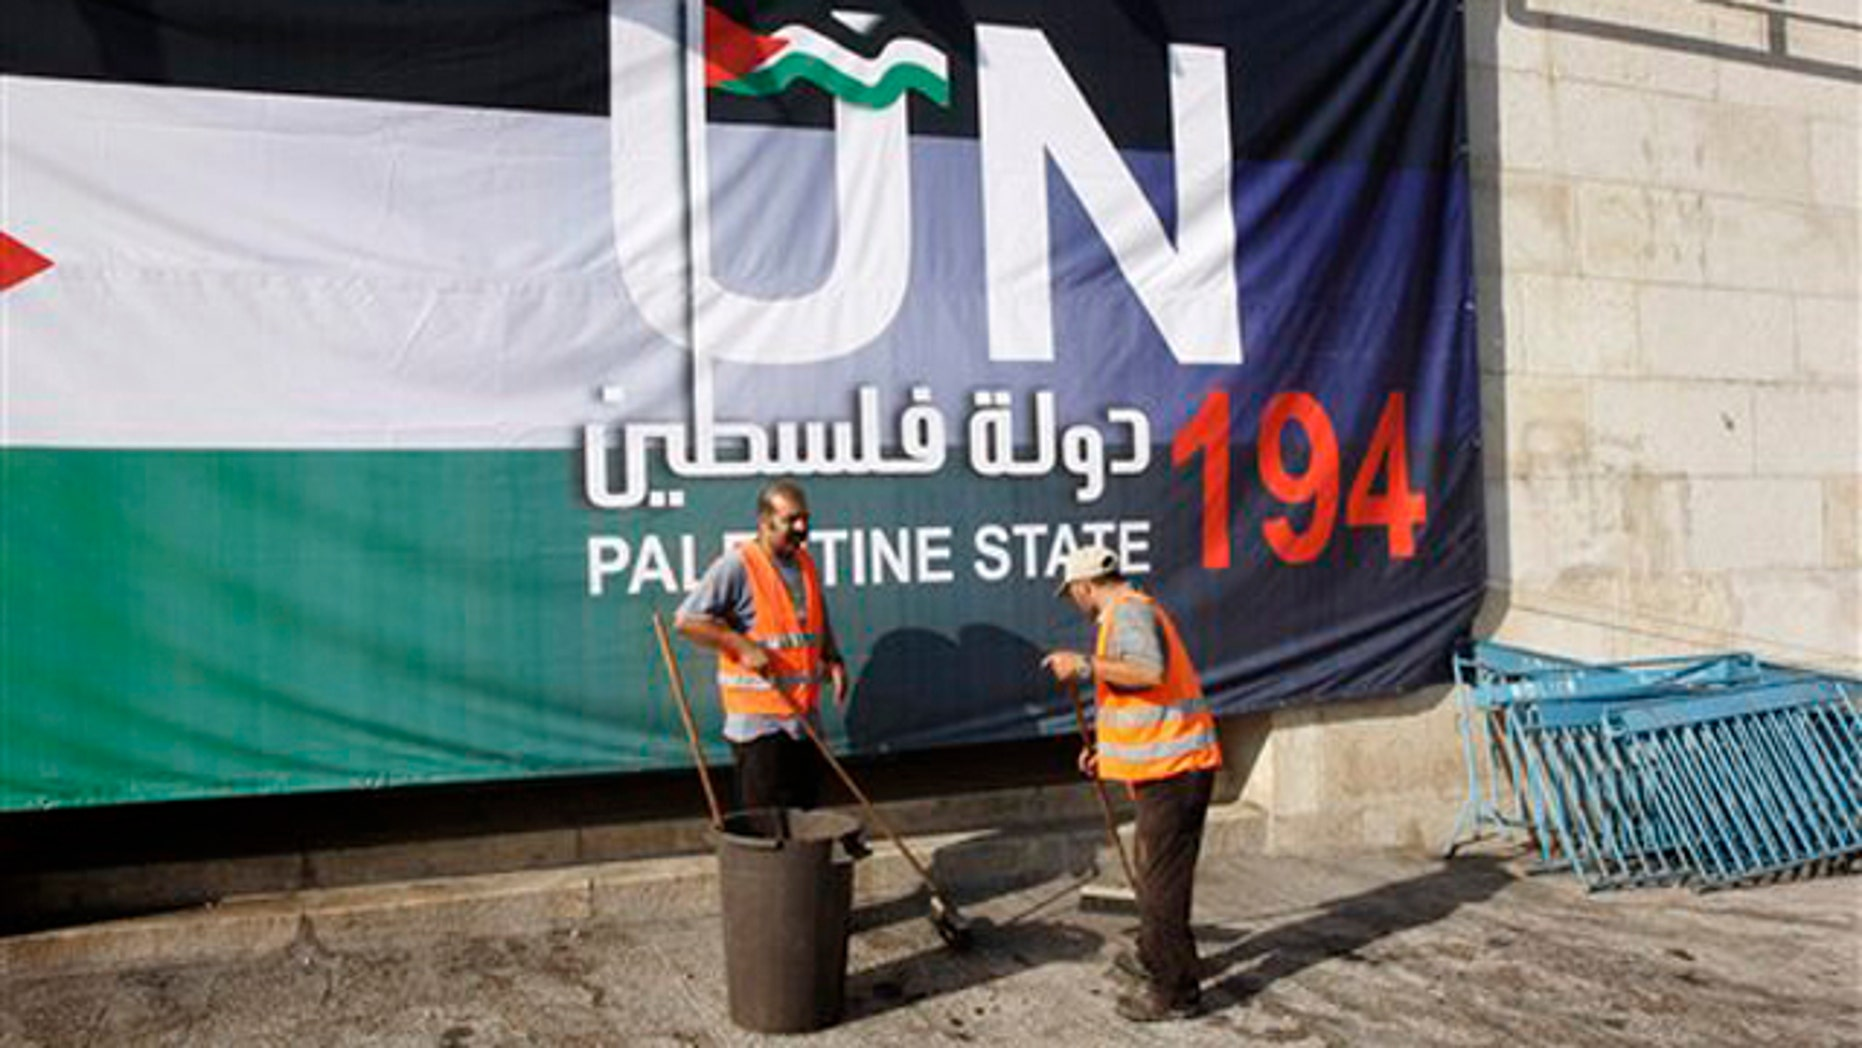 Palestinian municipality workers clean a street during a rally to support the Palestinian statehood bid in the United Nations, in the West Bank town of Bethlehem Sept. 18.